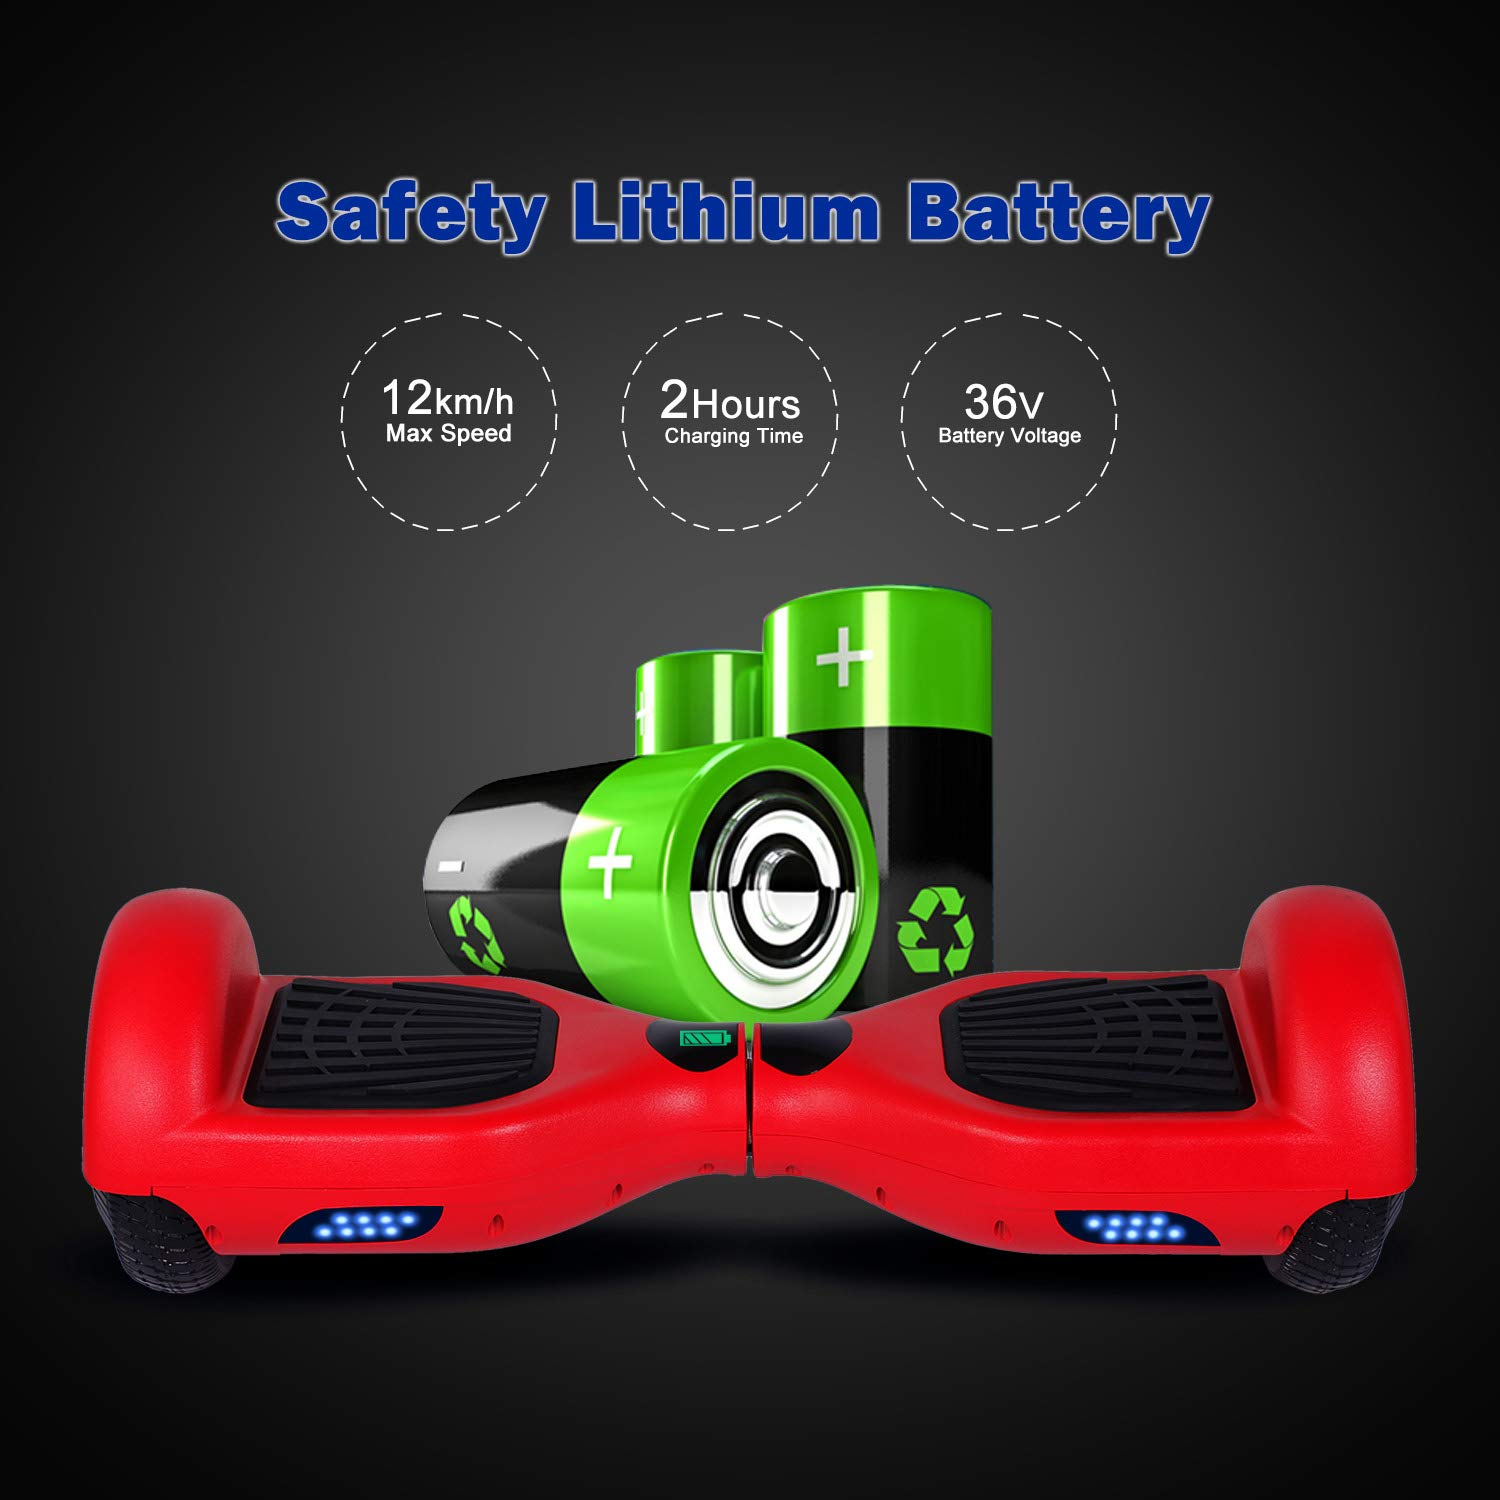 SISIGAD Hoverboard Self Balancing Scooter 6.5'' Two-Wheel Self Balancing Hoverboard with LED Lights Electric Scooter for Adult Kids Gift UL 2272 Certified - Red by SISIGAD (Image #3)